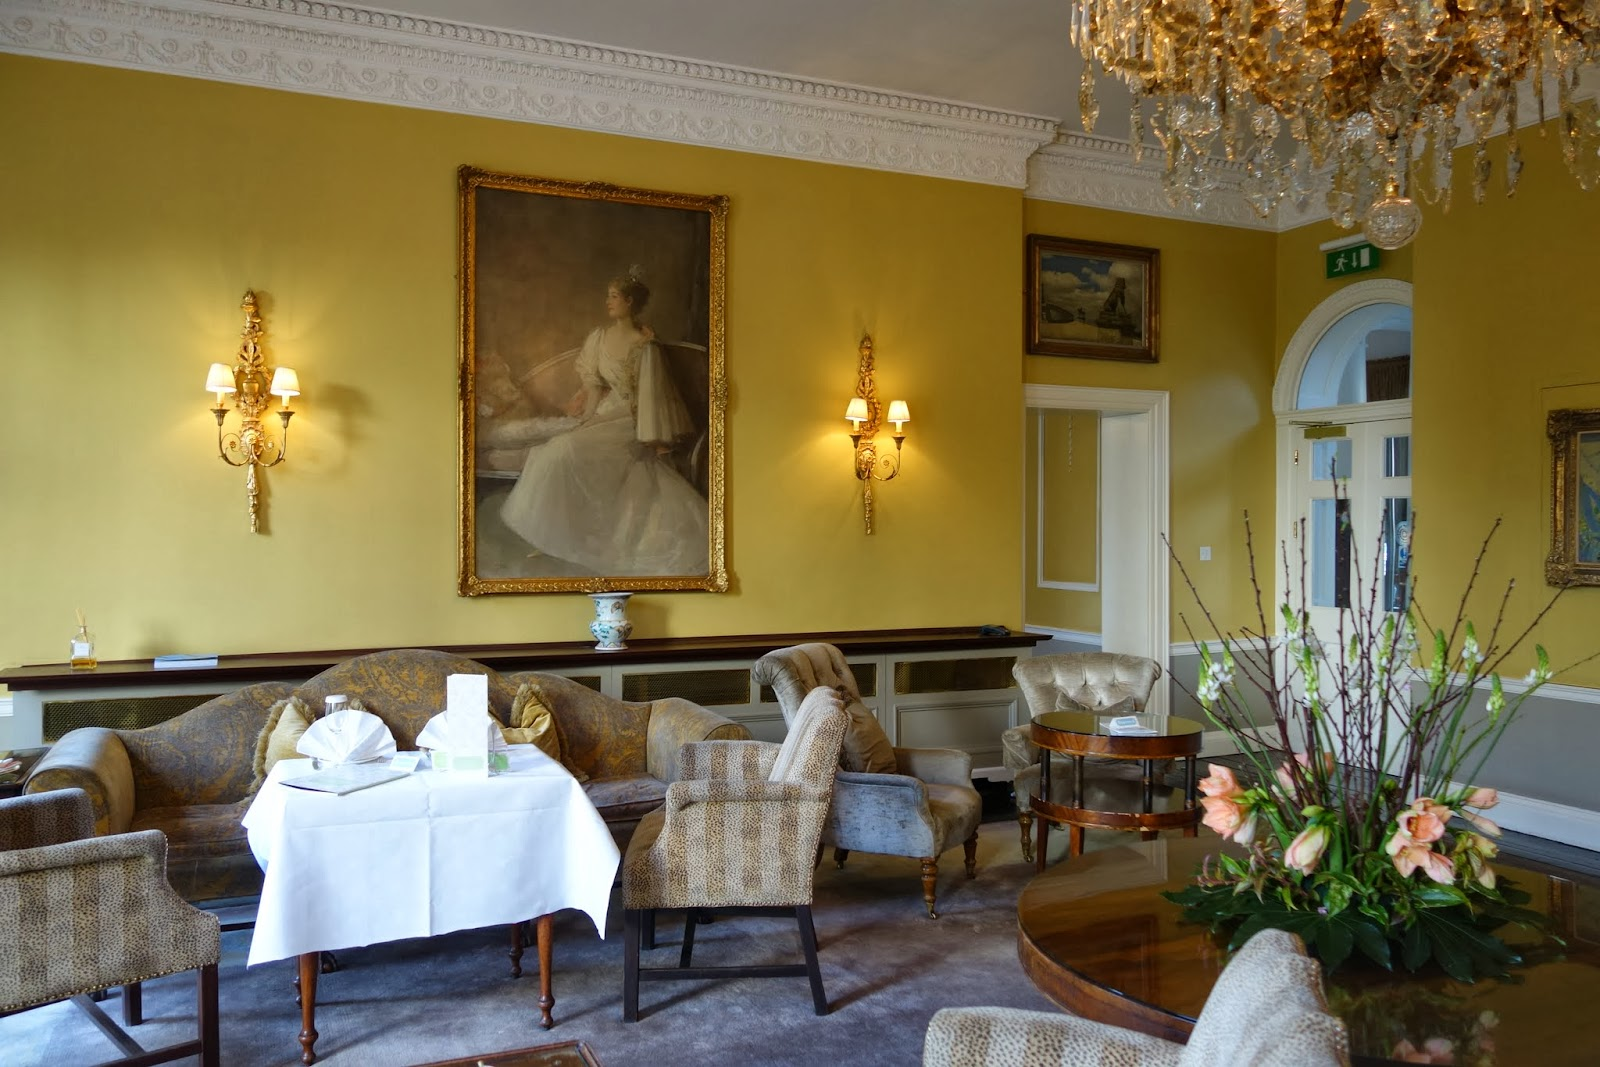 ... Merrion Hotel on a windy freezing day and I canu0027t express how excited I was. I was even delighted to be cold on the way there as I knew they had a ... & Art Tea at the Merrion Hotel | French Foodie in Dublin - Food Blog ...